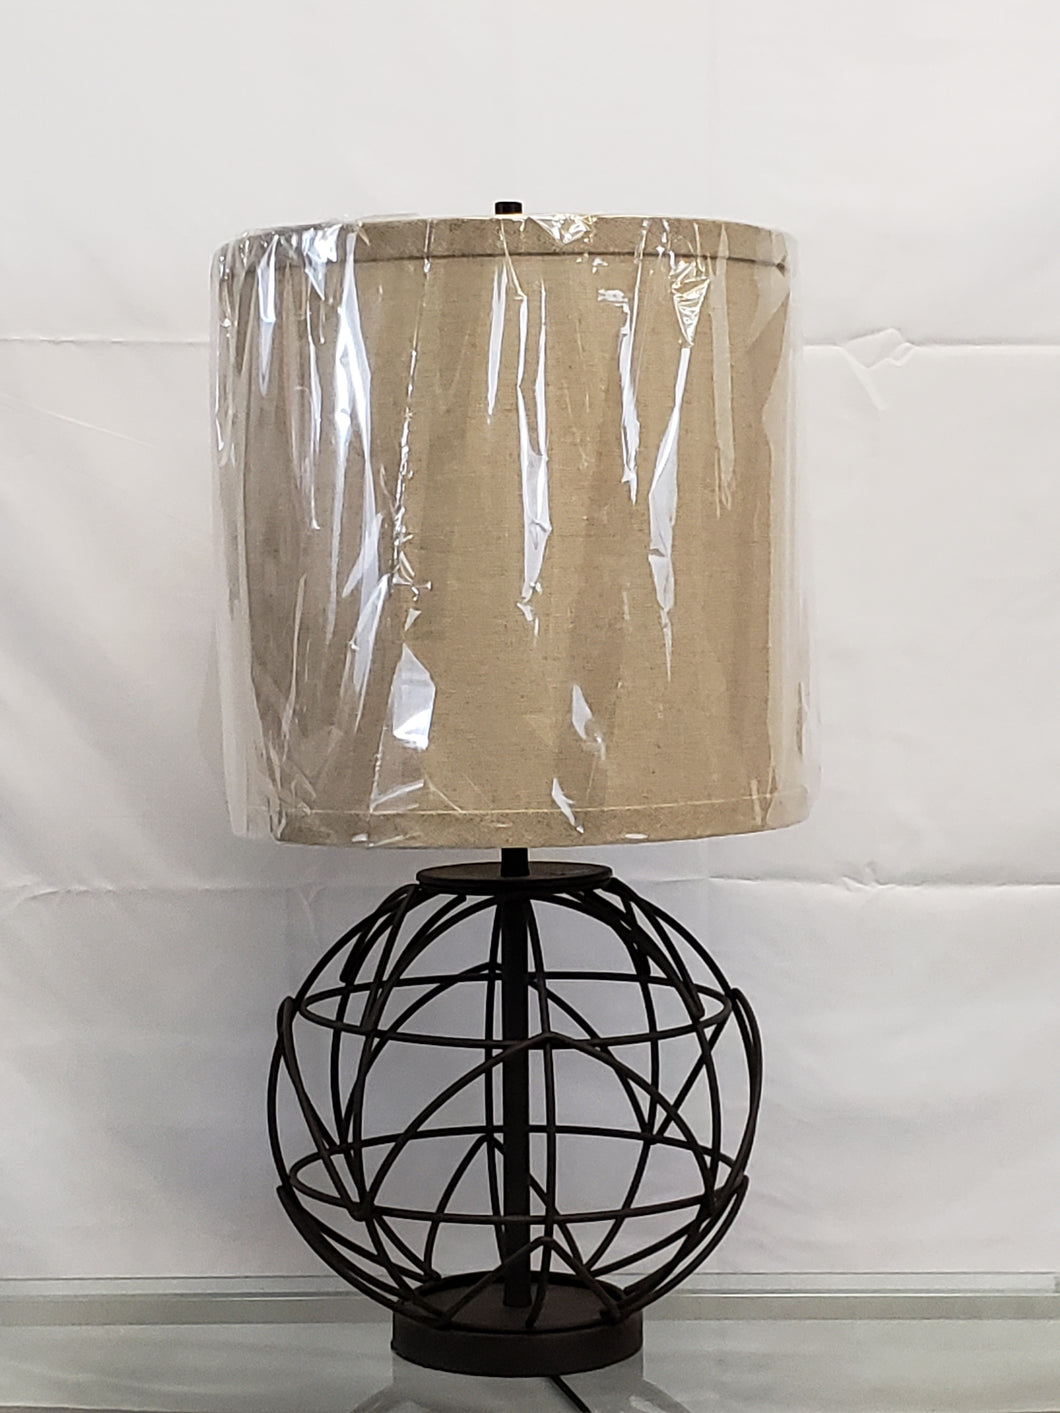 item #478: Alloy Globe table lamp